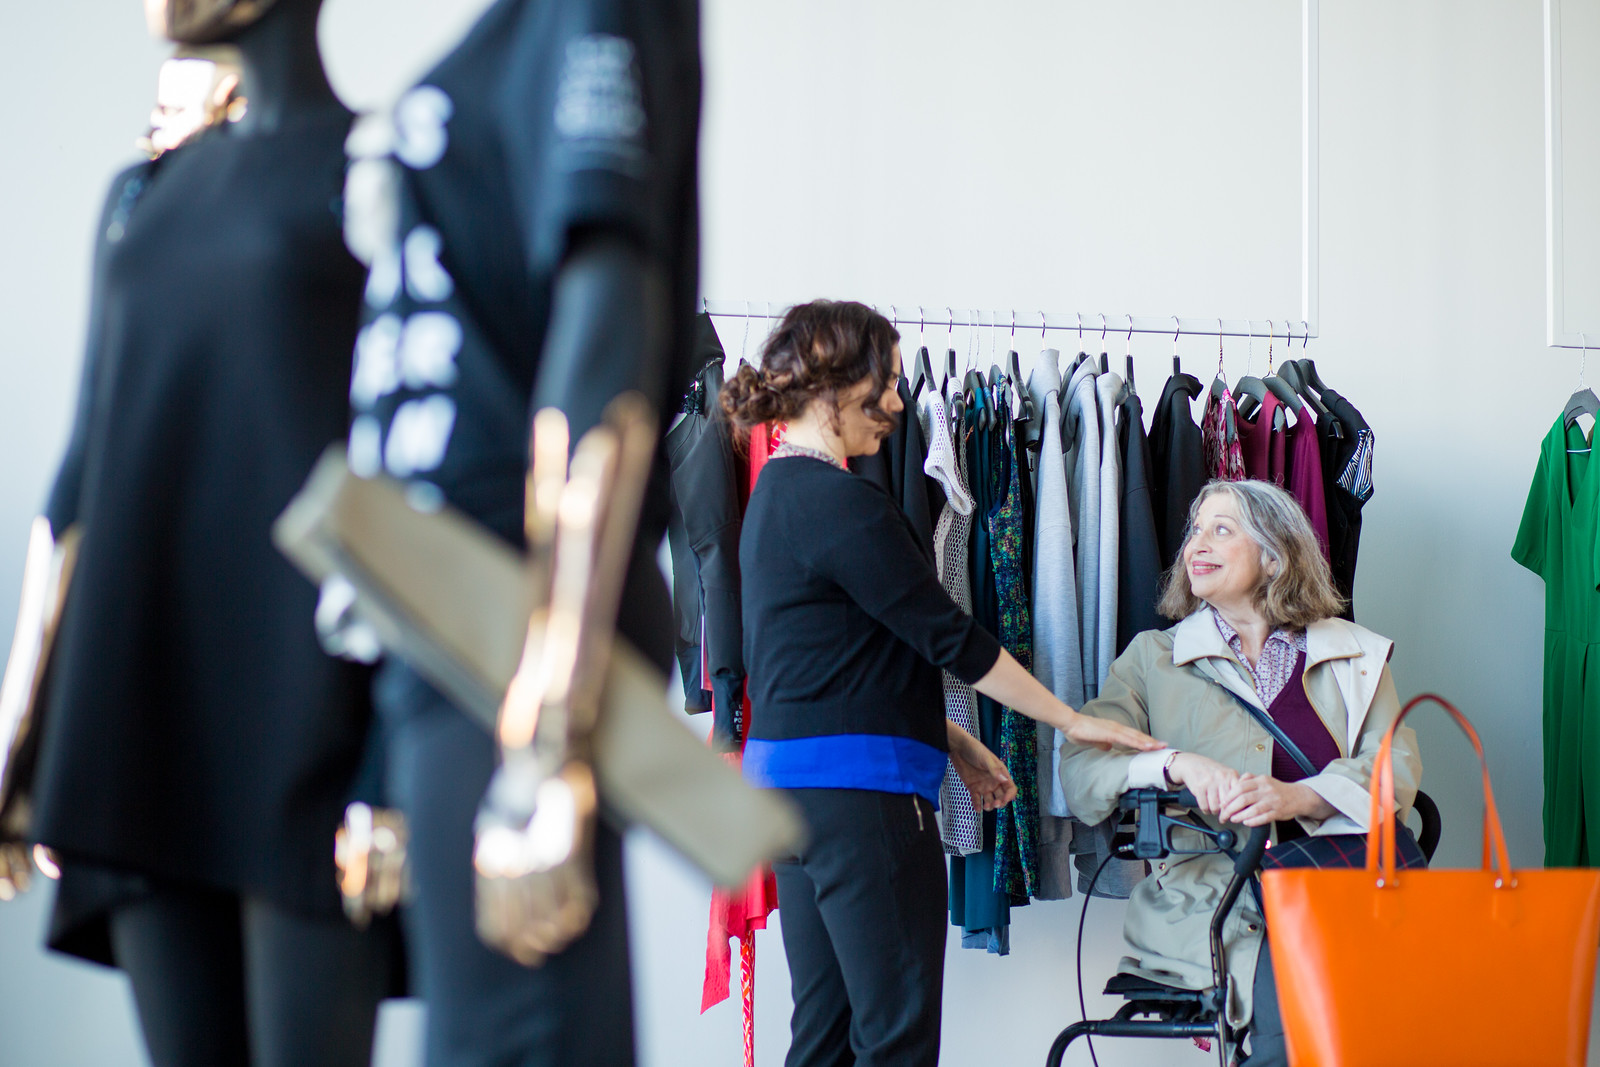 An elderly woman shops for a dress while using a wheeled mobility device. A saleswoman holds up a dress.